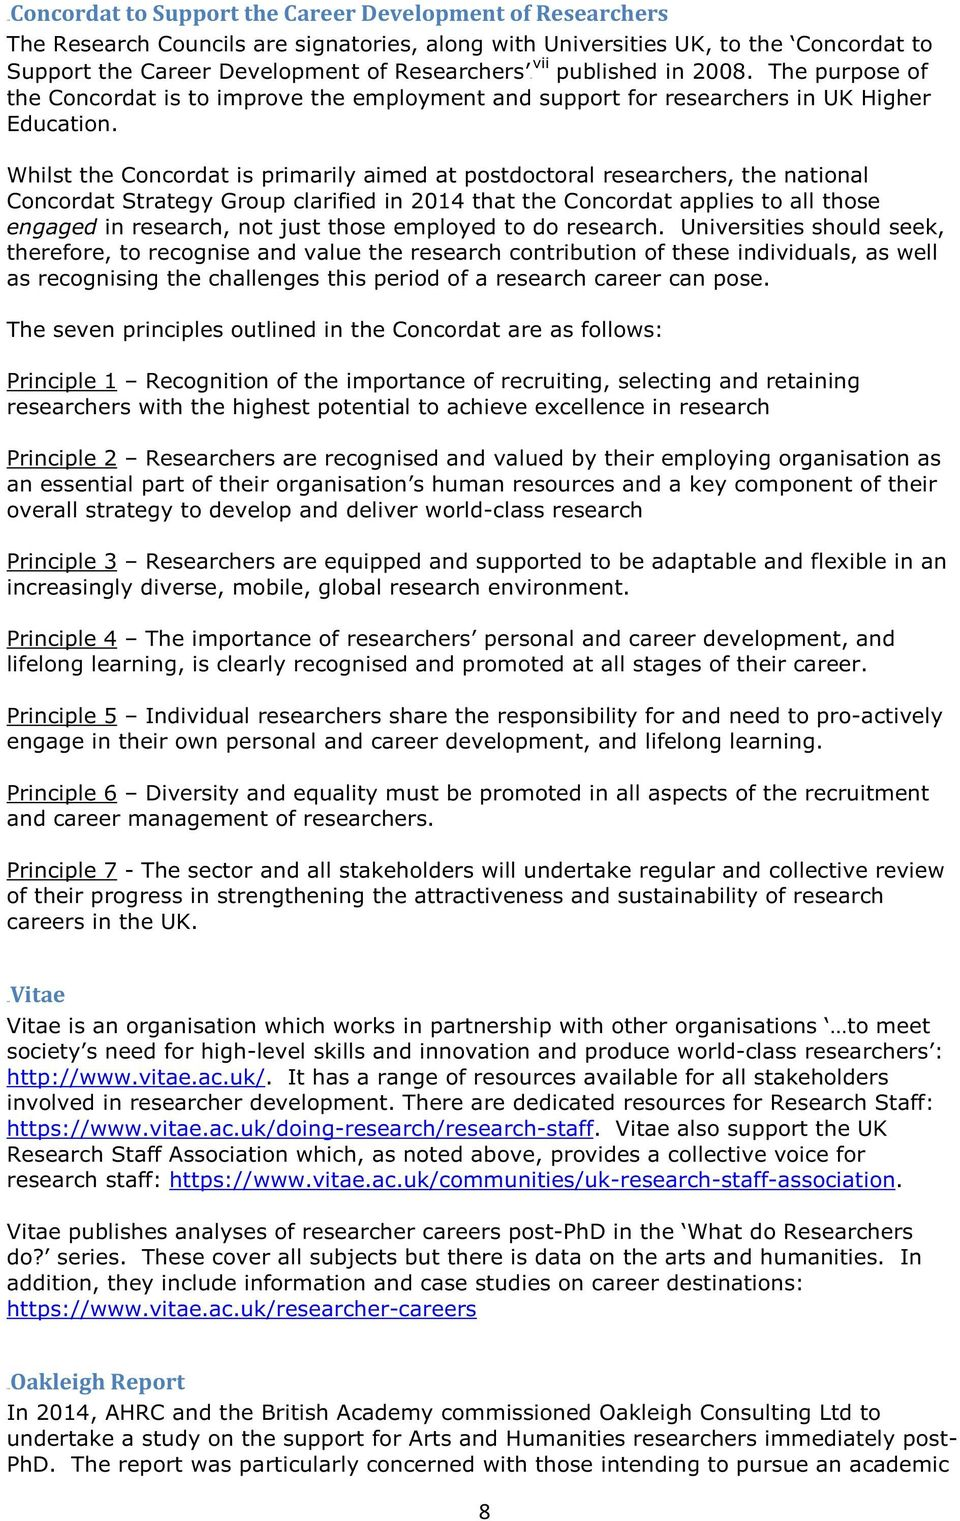 Whilst the Concordat is primarily aimed at postdoctoral researchers, the national Concordat Strategy Group clarified in 2014 that the Concordat applies to all those engaged in research, not just